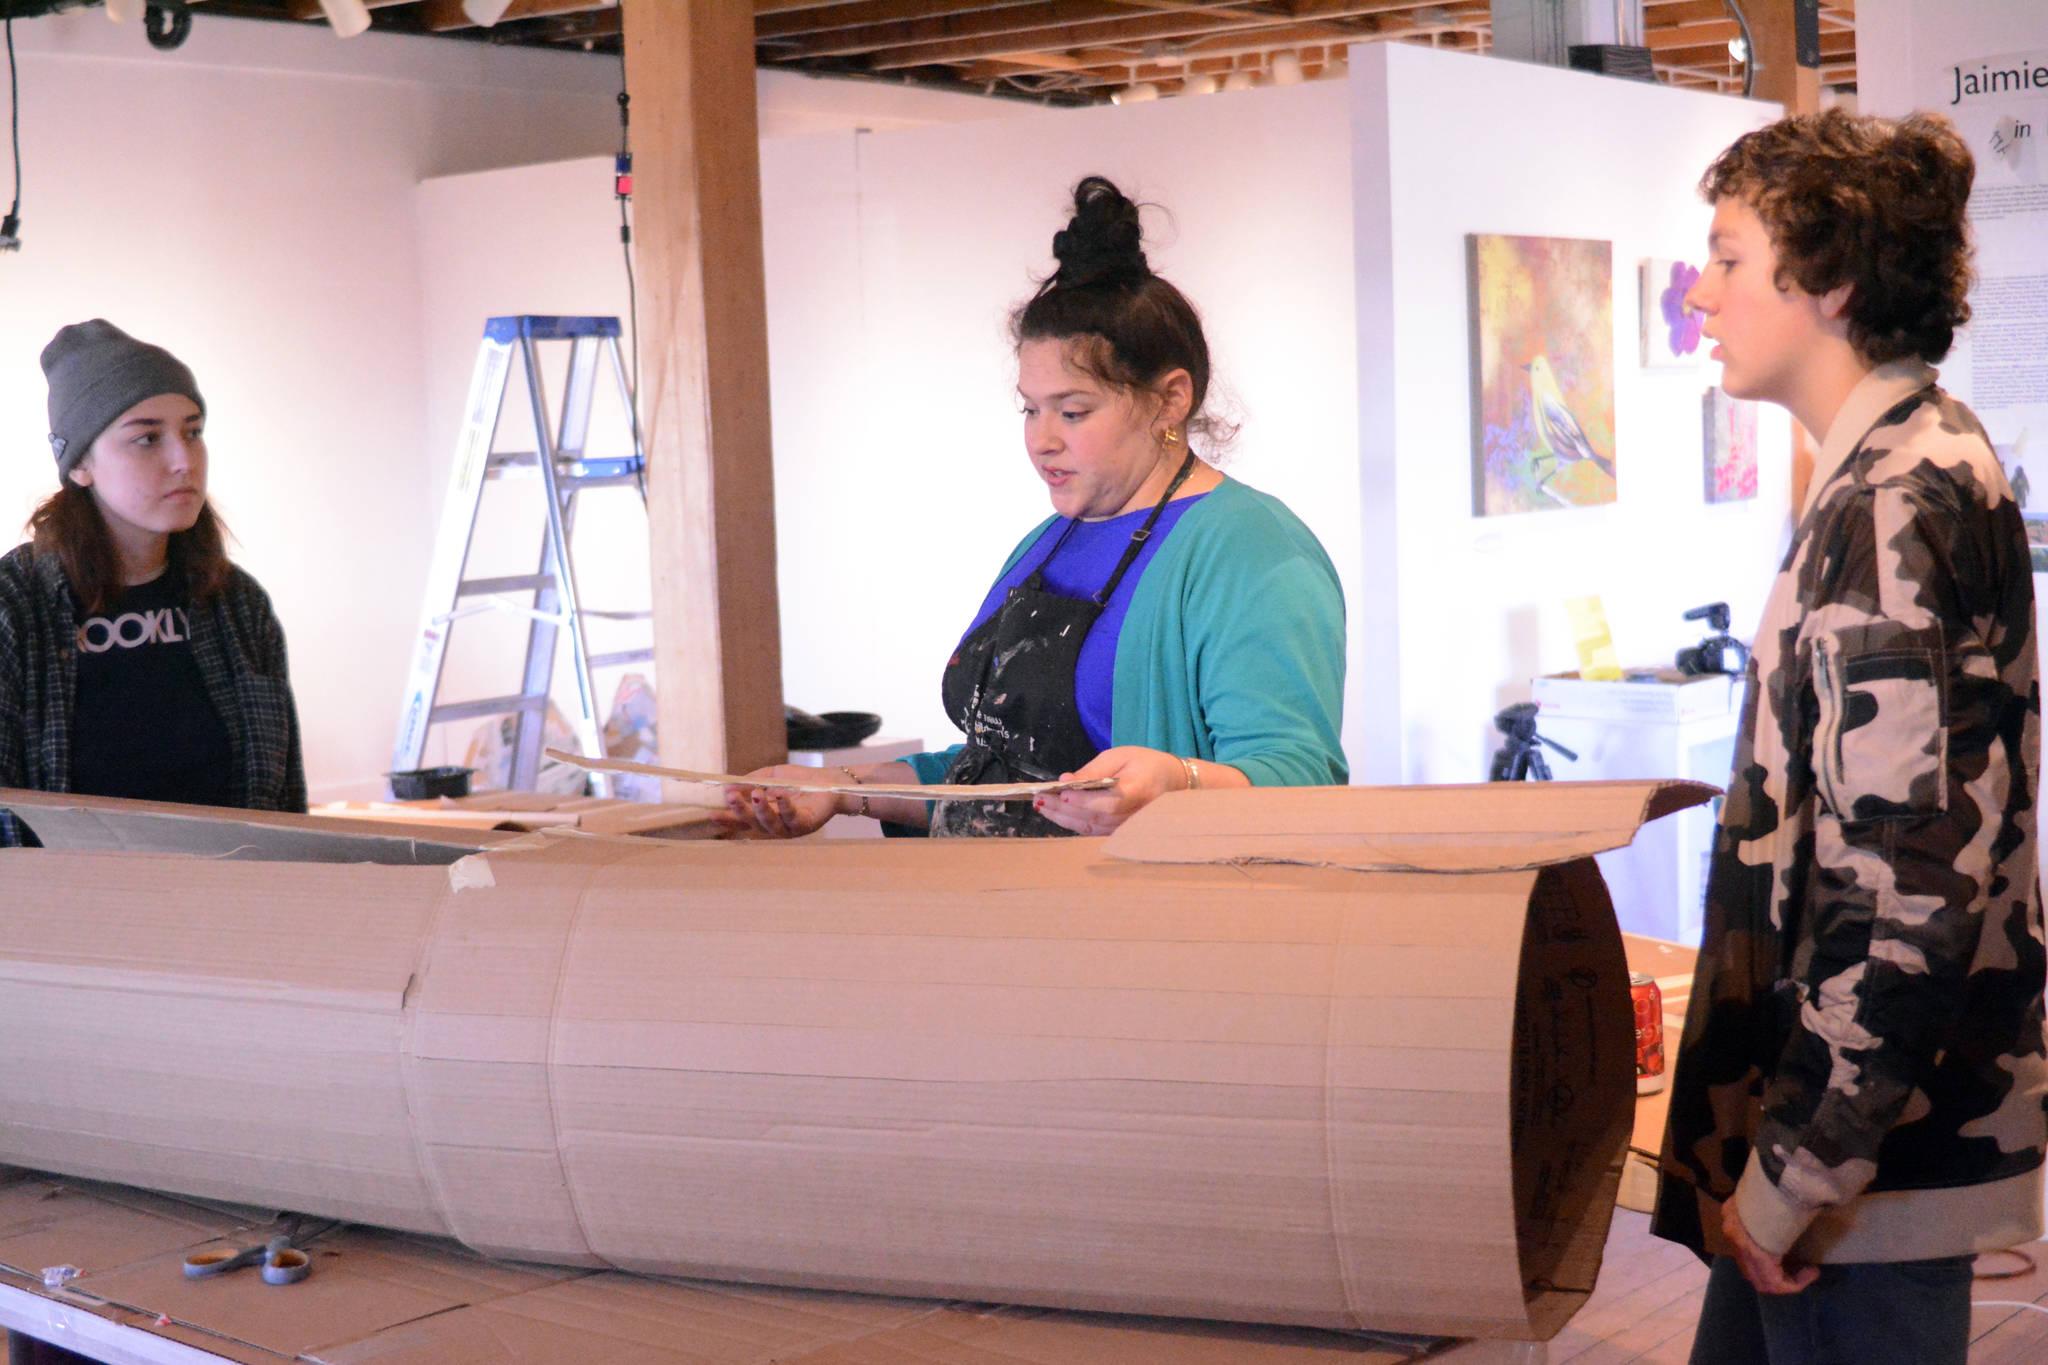 TOP: Artist in Residence Jaimie Warren, center, discusses how to make a log costume with Mila Stickrod, left, and Alex Franklin, right, at her temporary studio at Bunnell Street Arts Center. The Brooklyn, New York, artist visits Homer this month. (Photo by Michael Armstrong, Homer News)